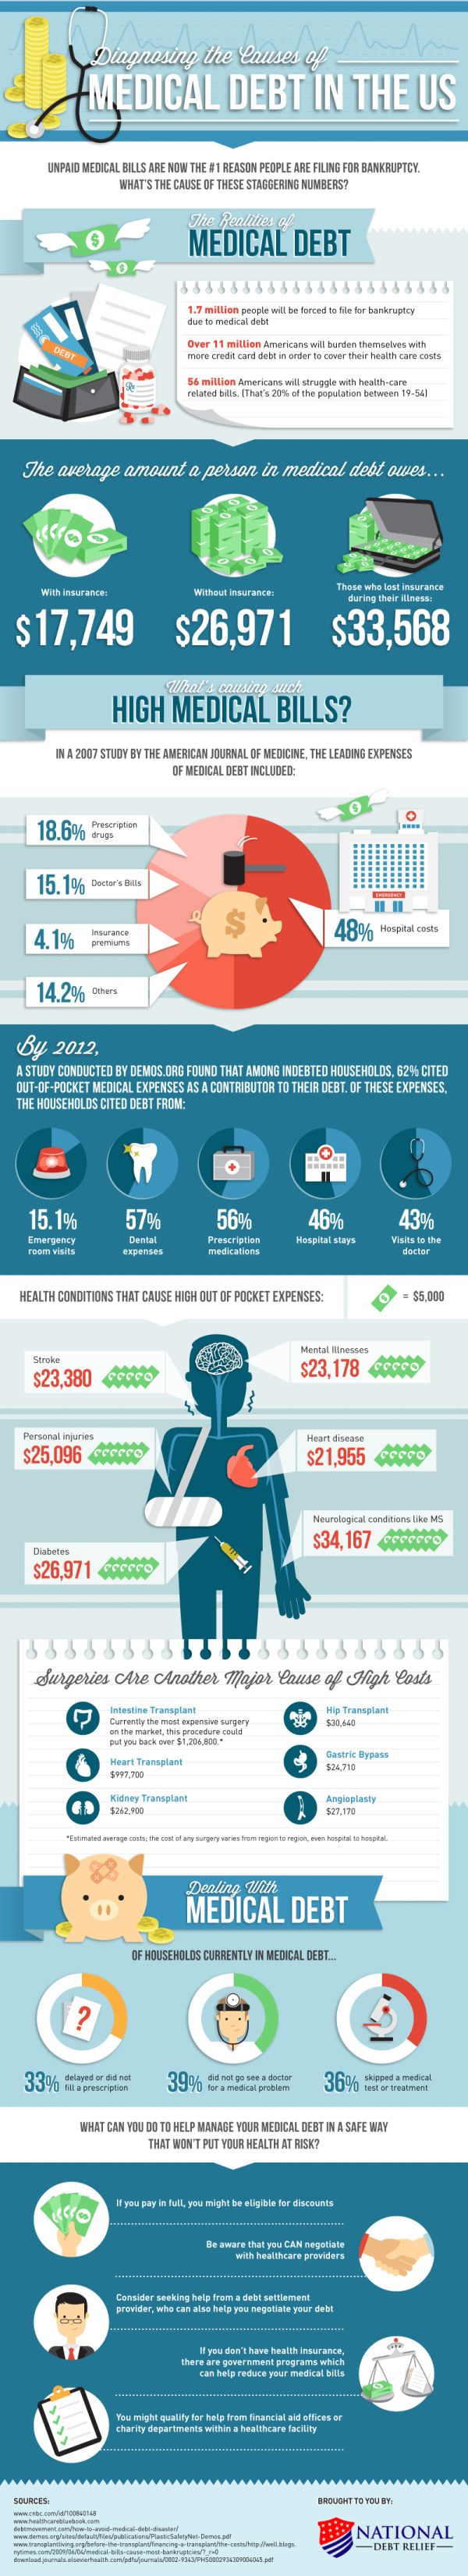 Pin by Christine Gates on Health Zone Medical debt